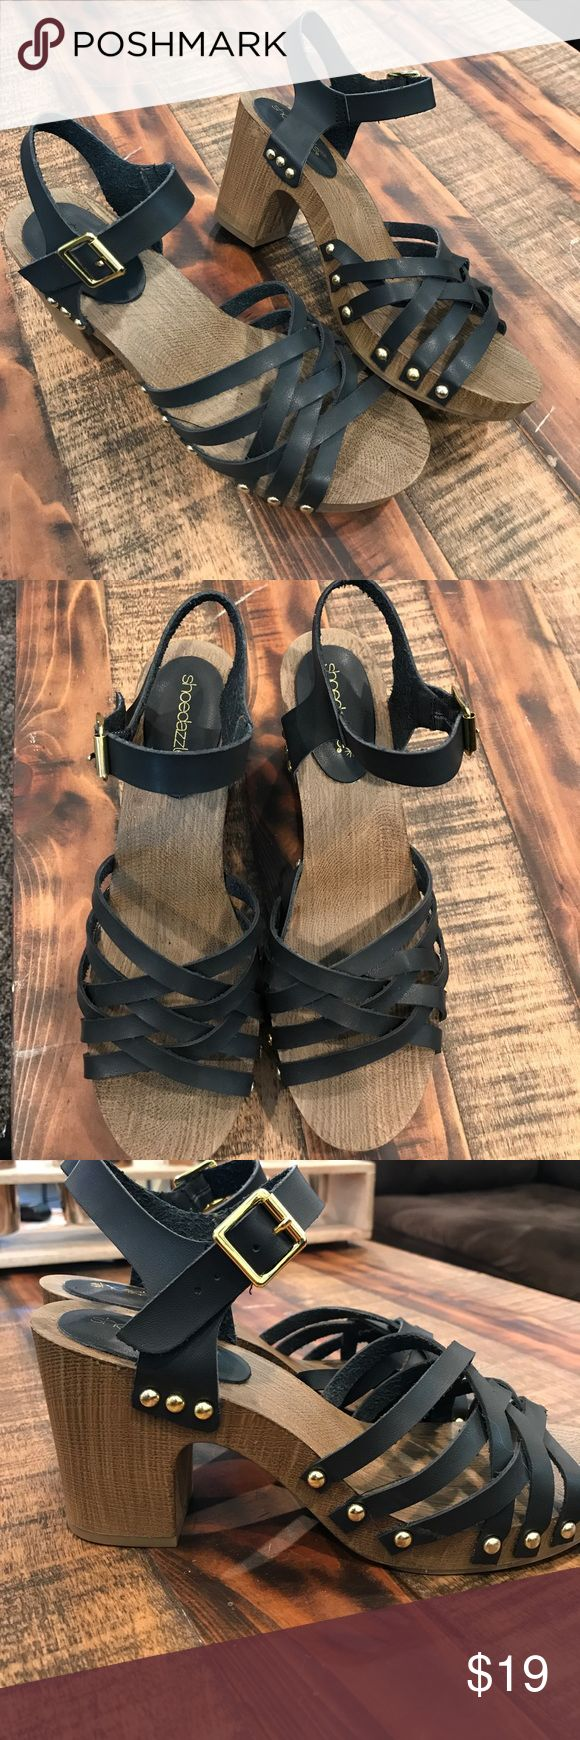 Shoe dazzle Dorthy Black Brown Strappy heel 9 Brand new without tags. ShoeDazzle Shoes Platforms